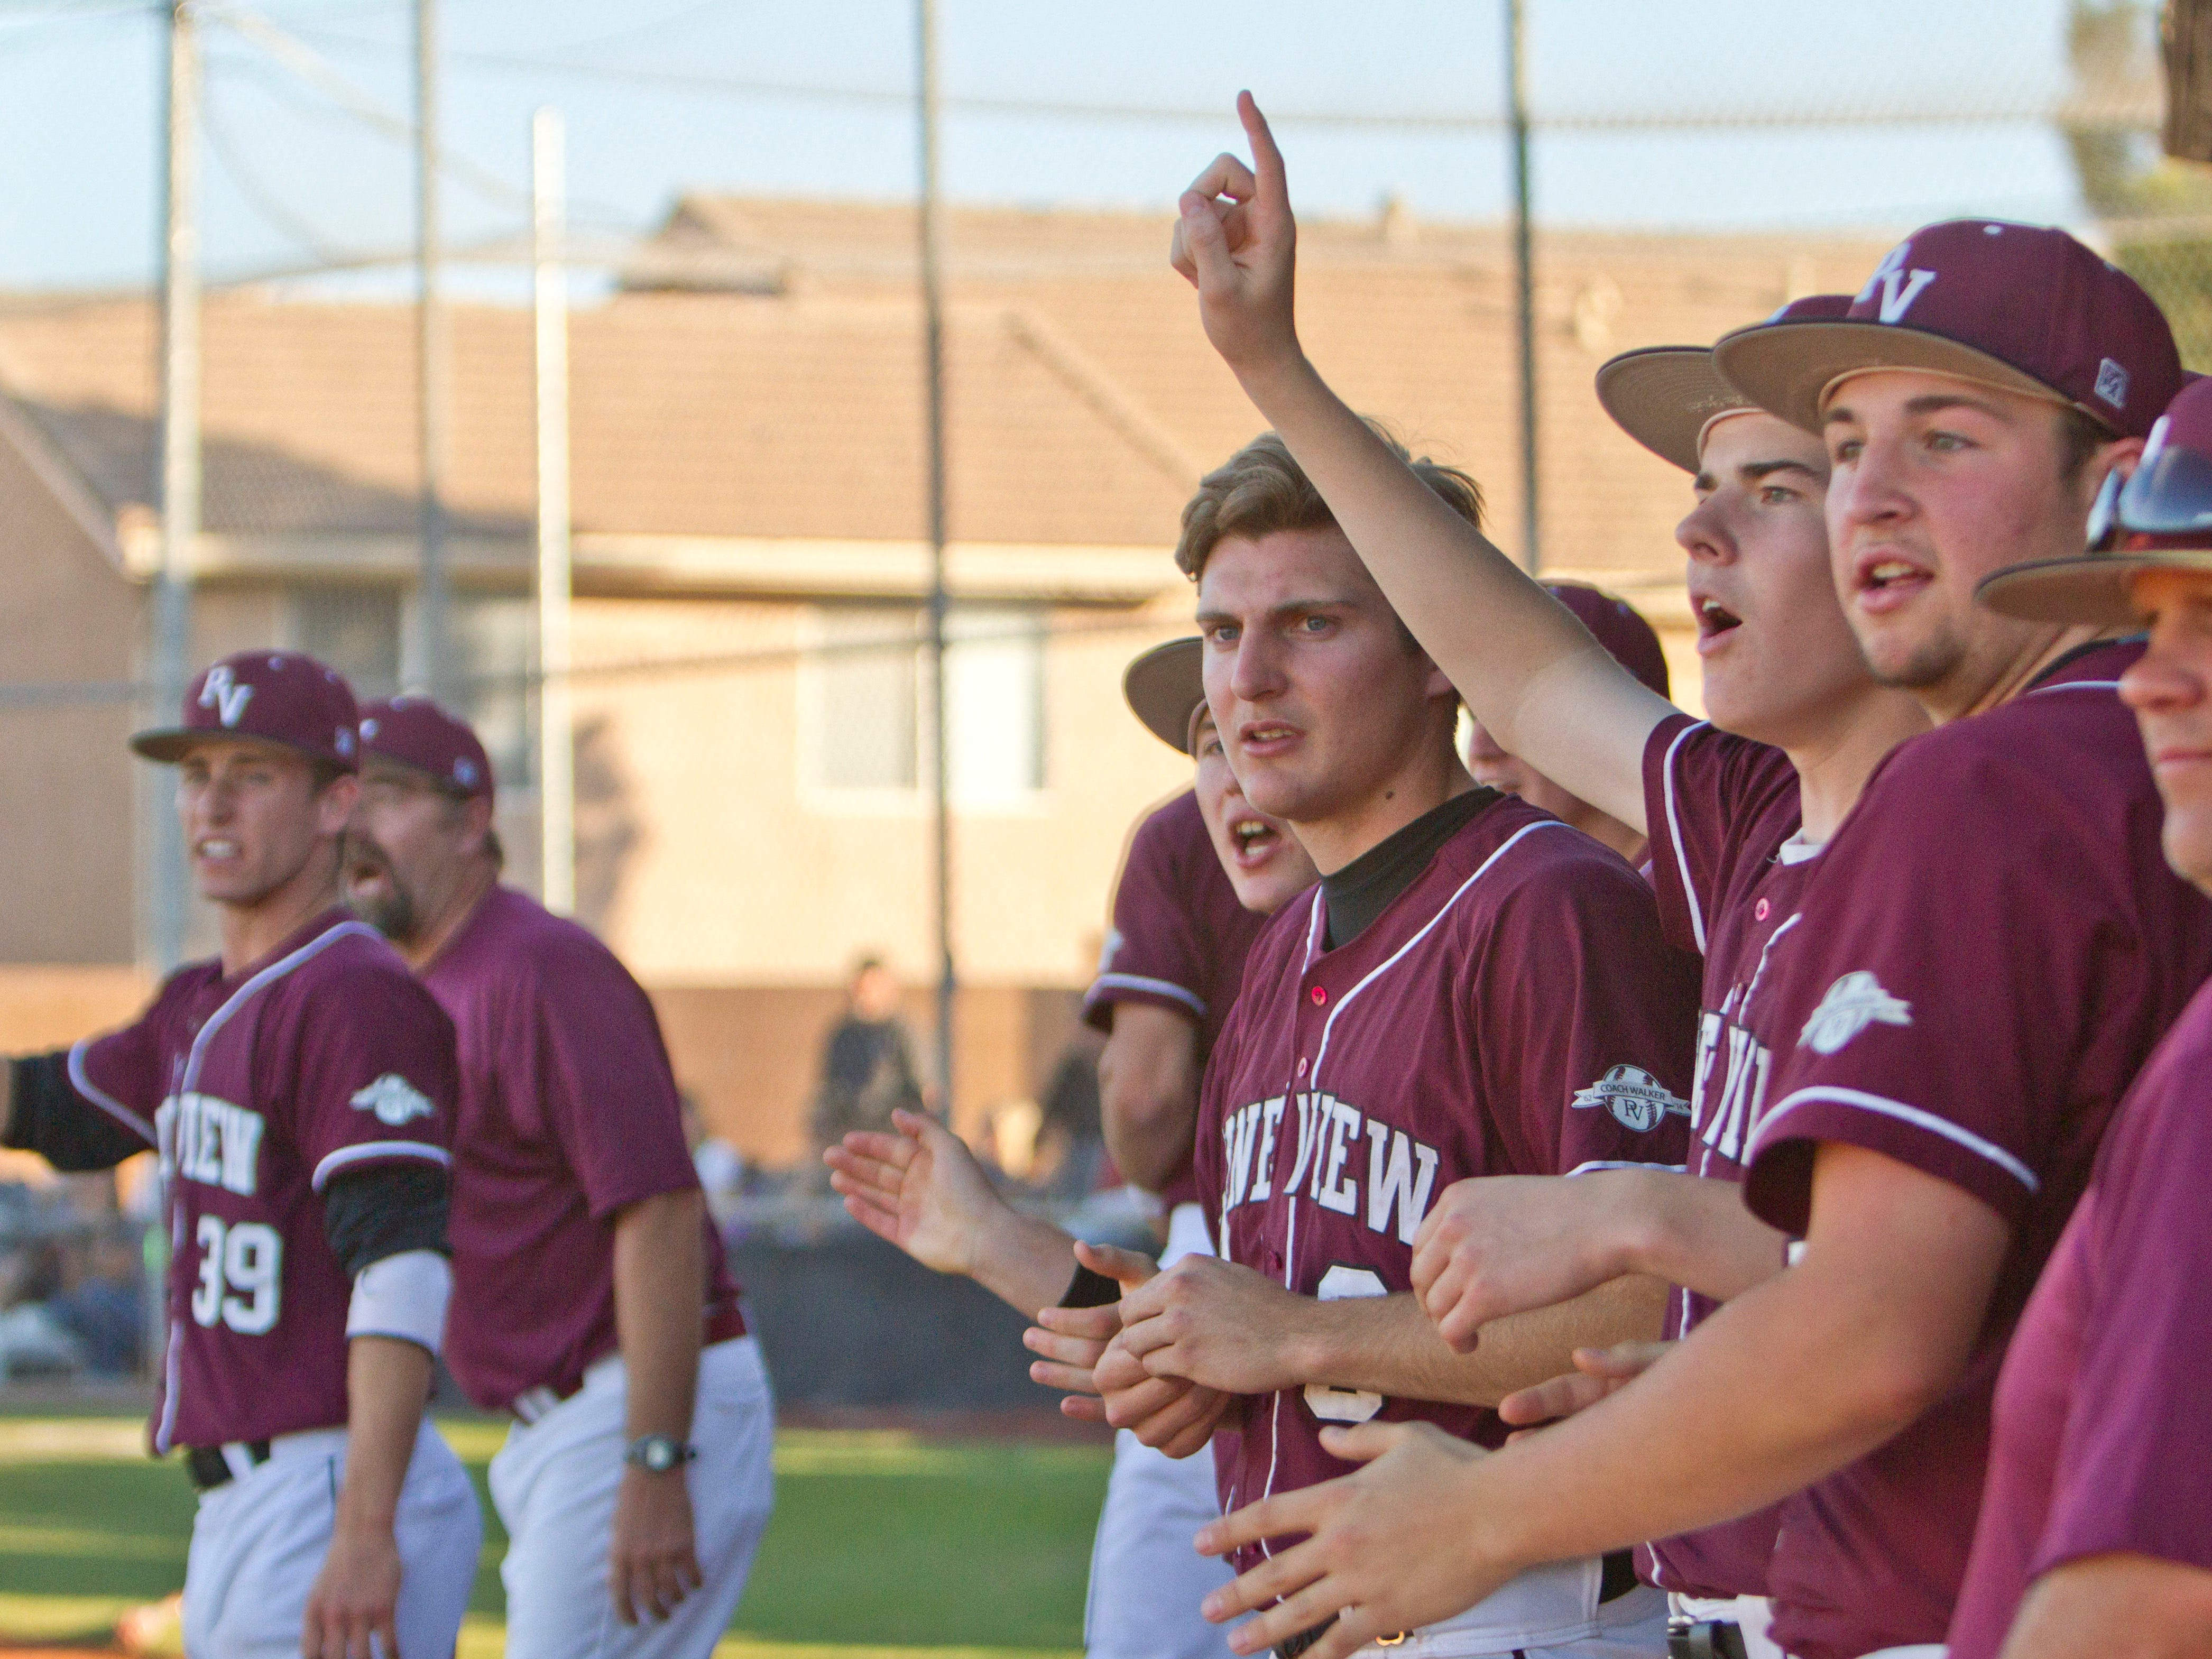 Pine View players encourage teammates from the sidelines Tuesday in St. George.